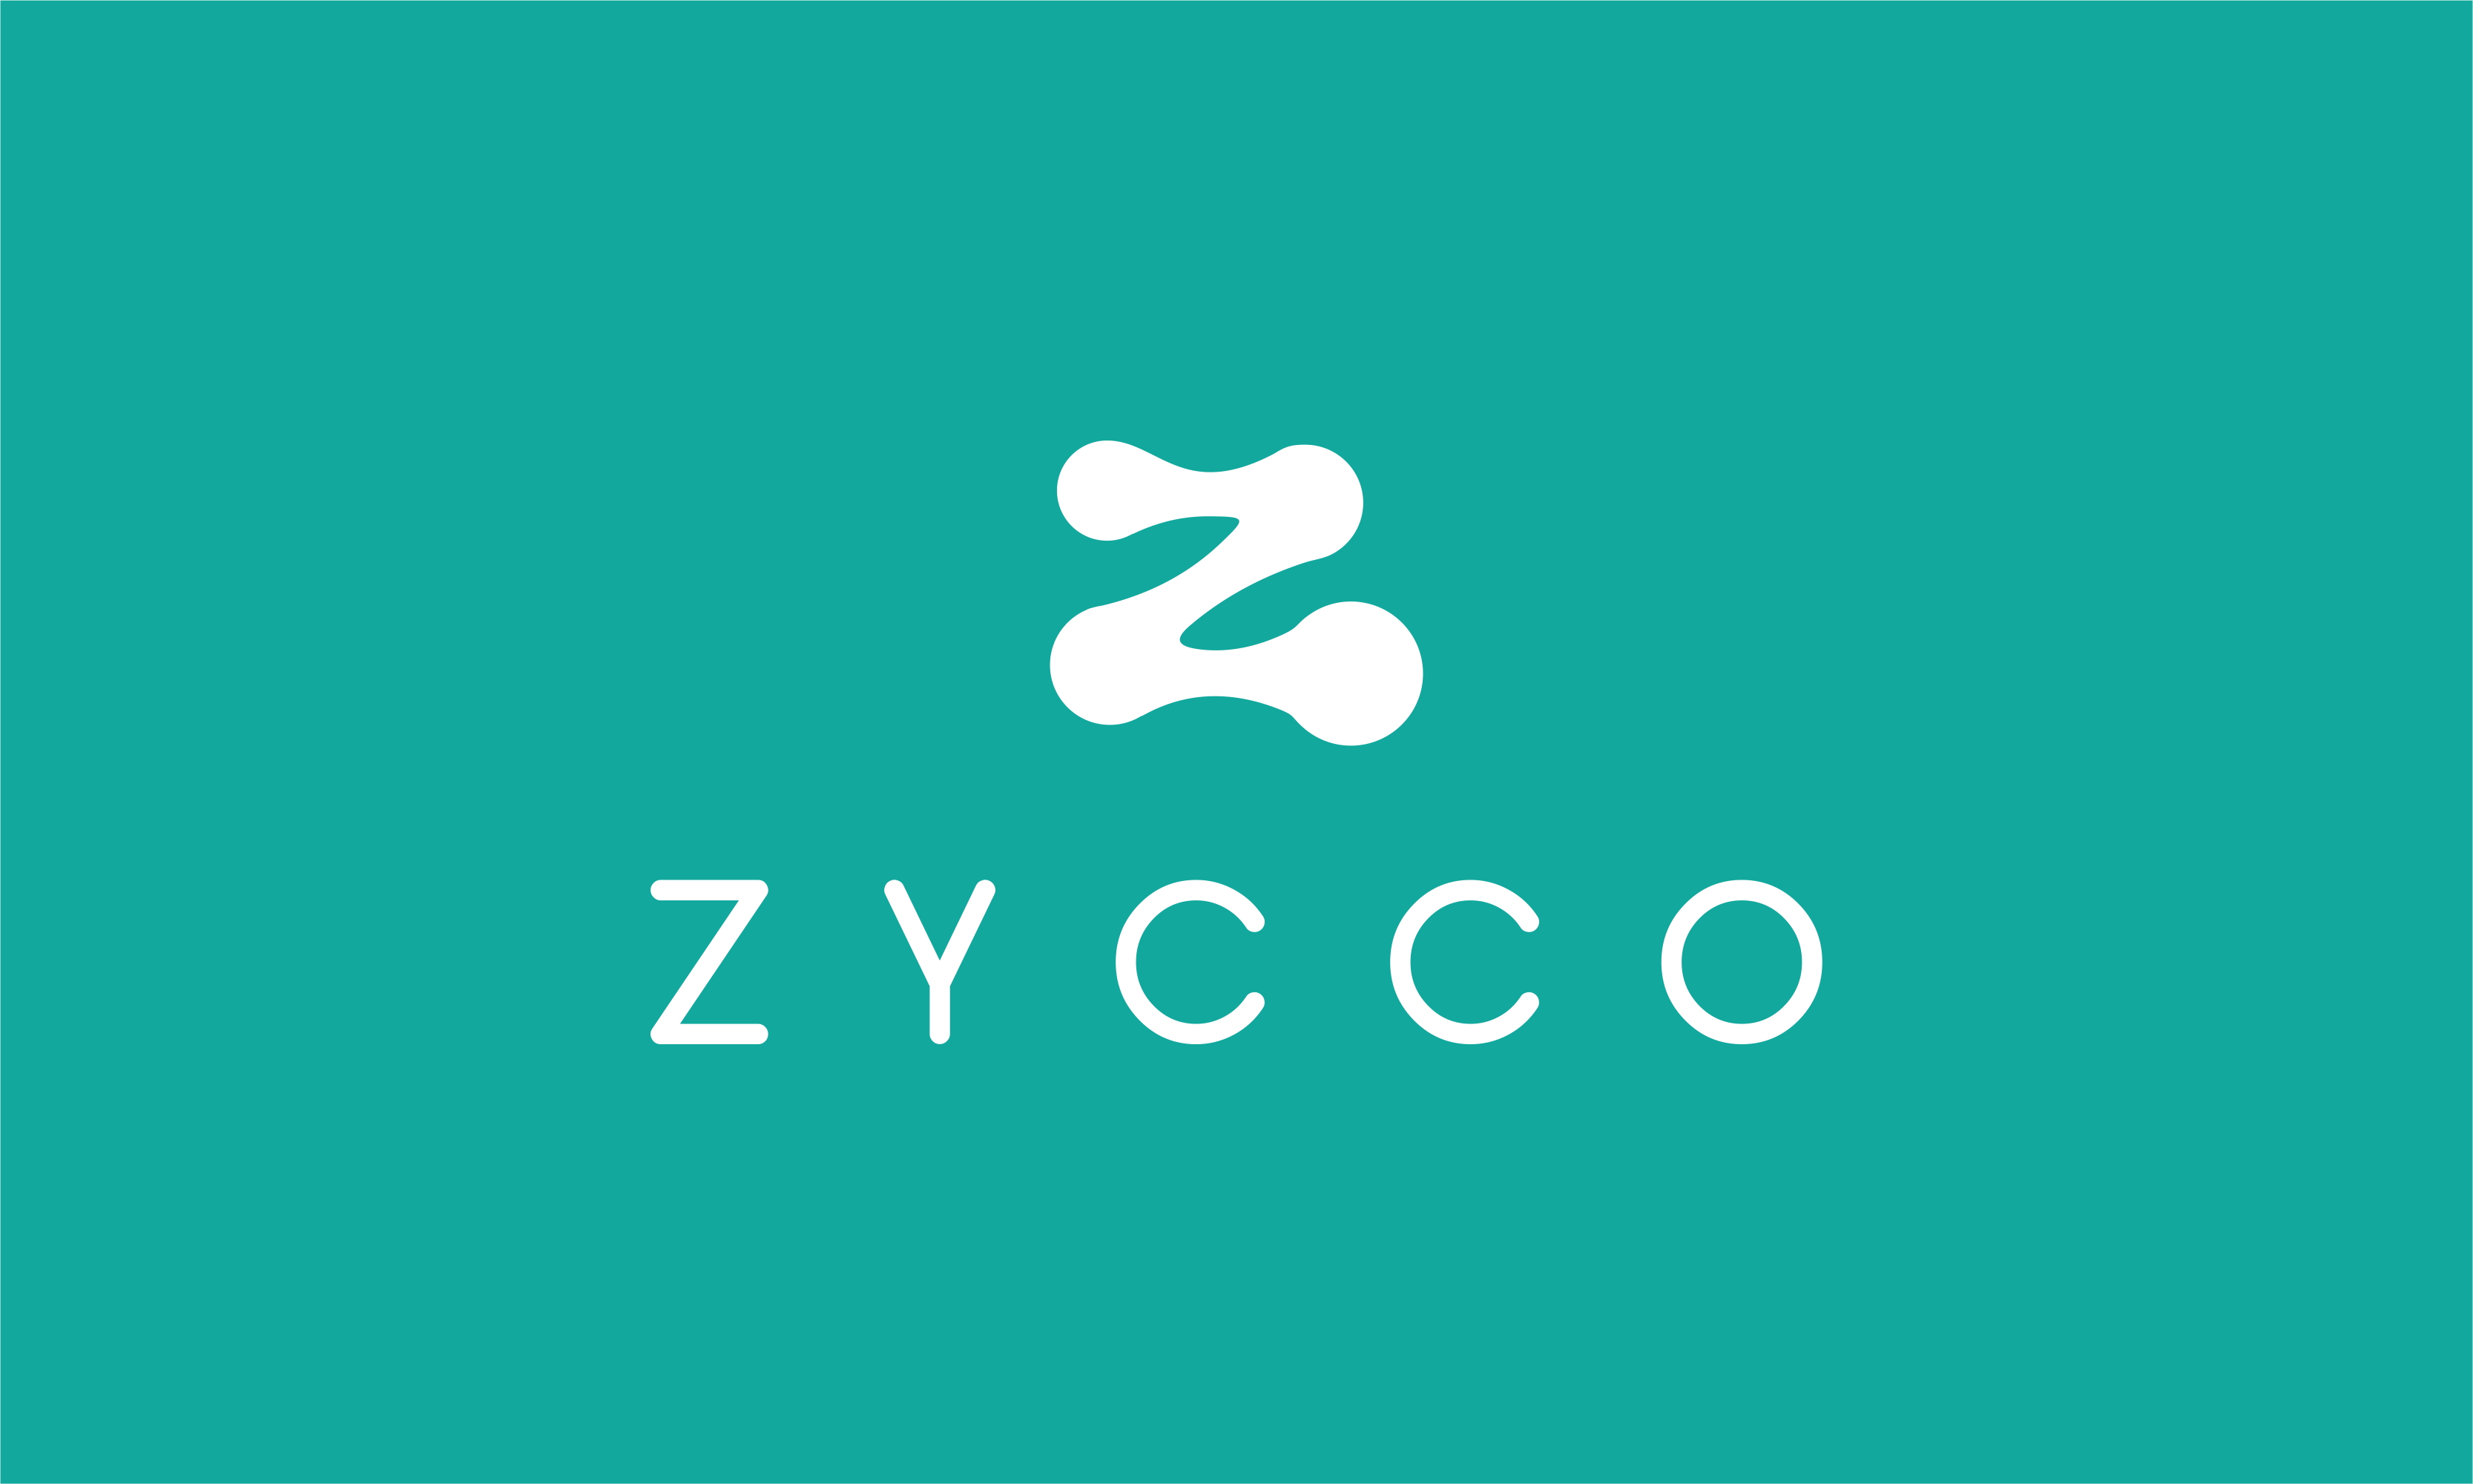 Zycco - Music startup name for sale